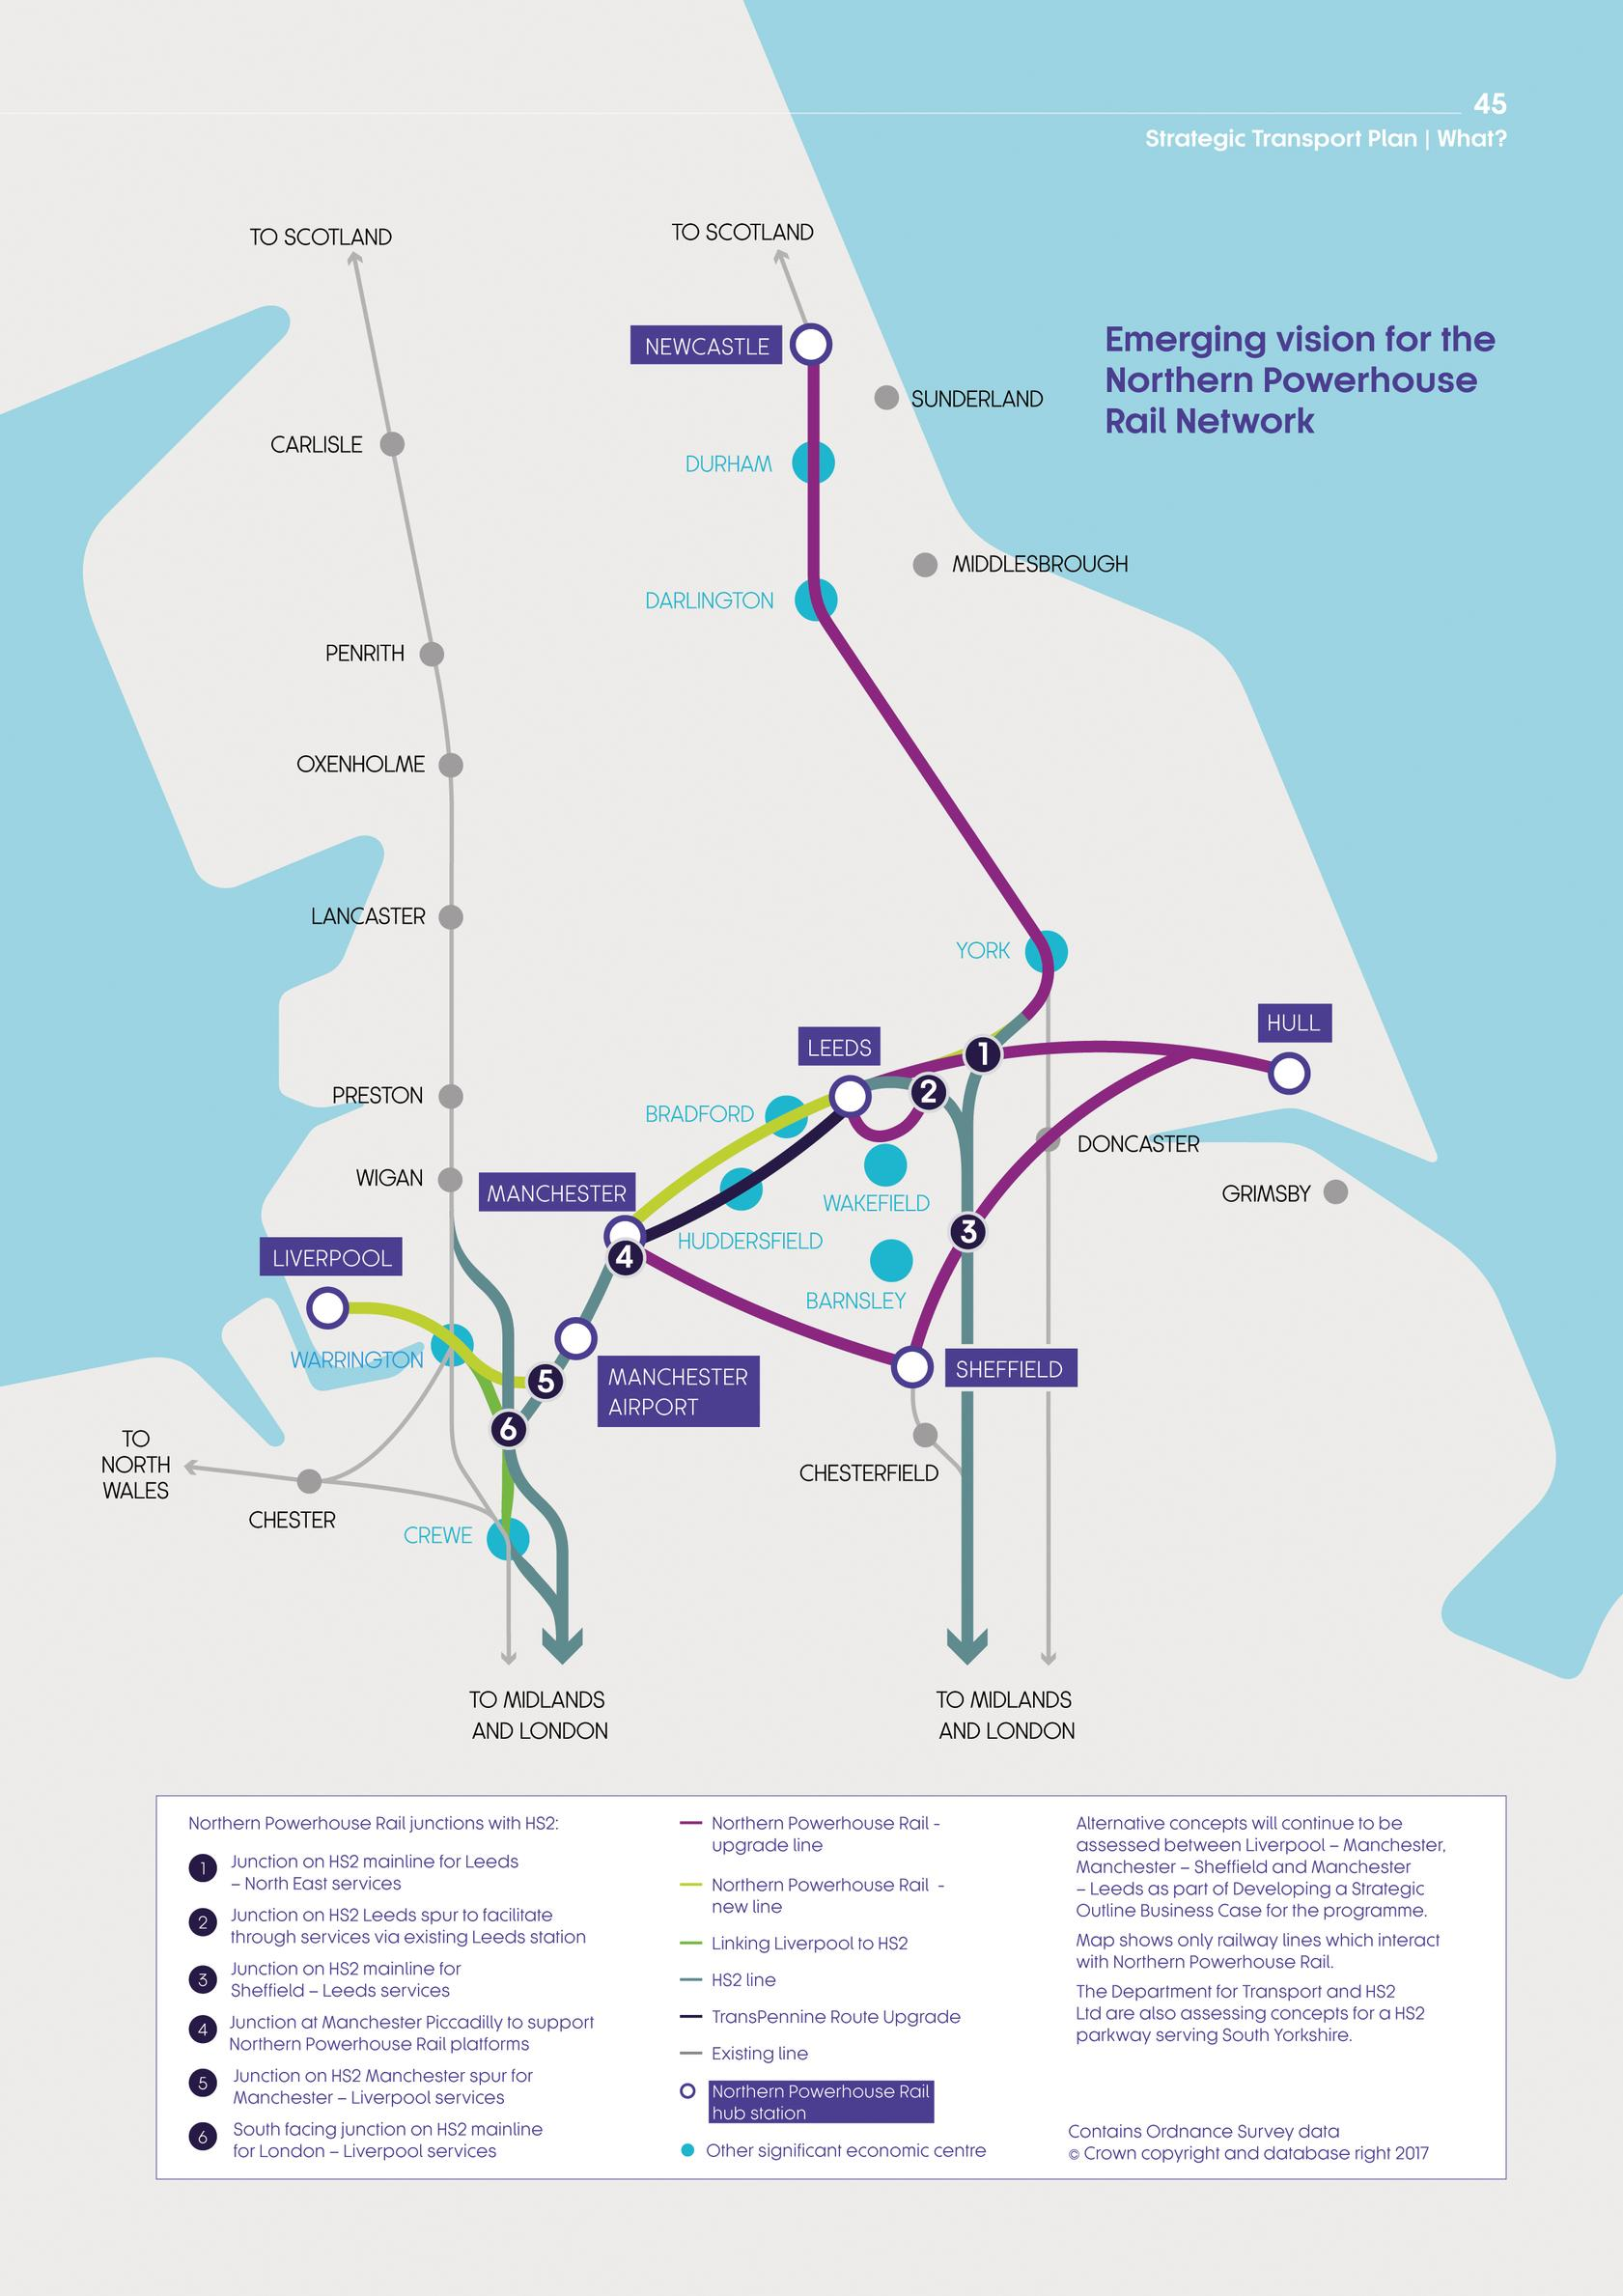 TfN criticised for presentation of Northern Powerhouse Rail